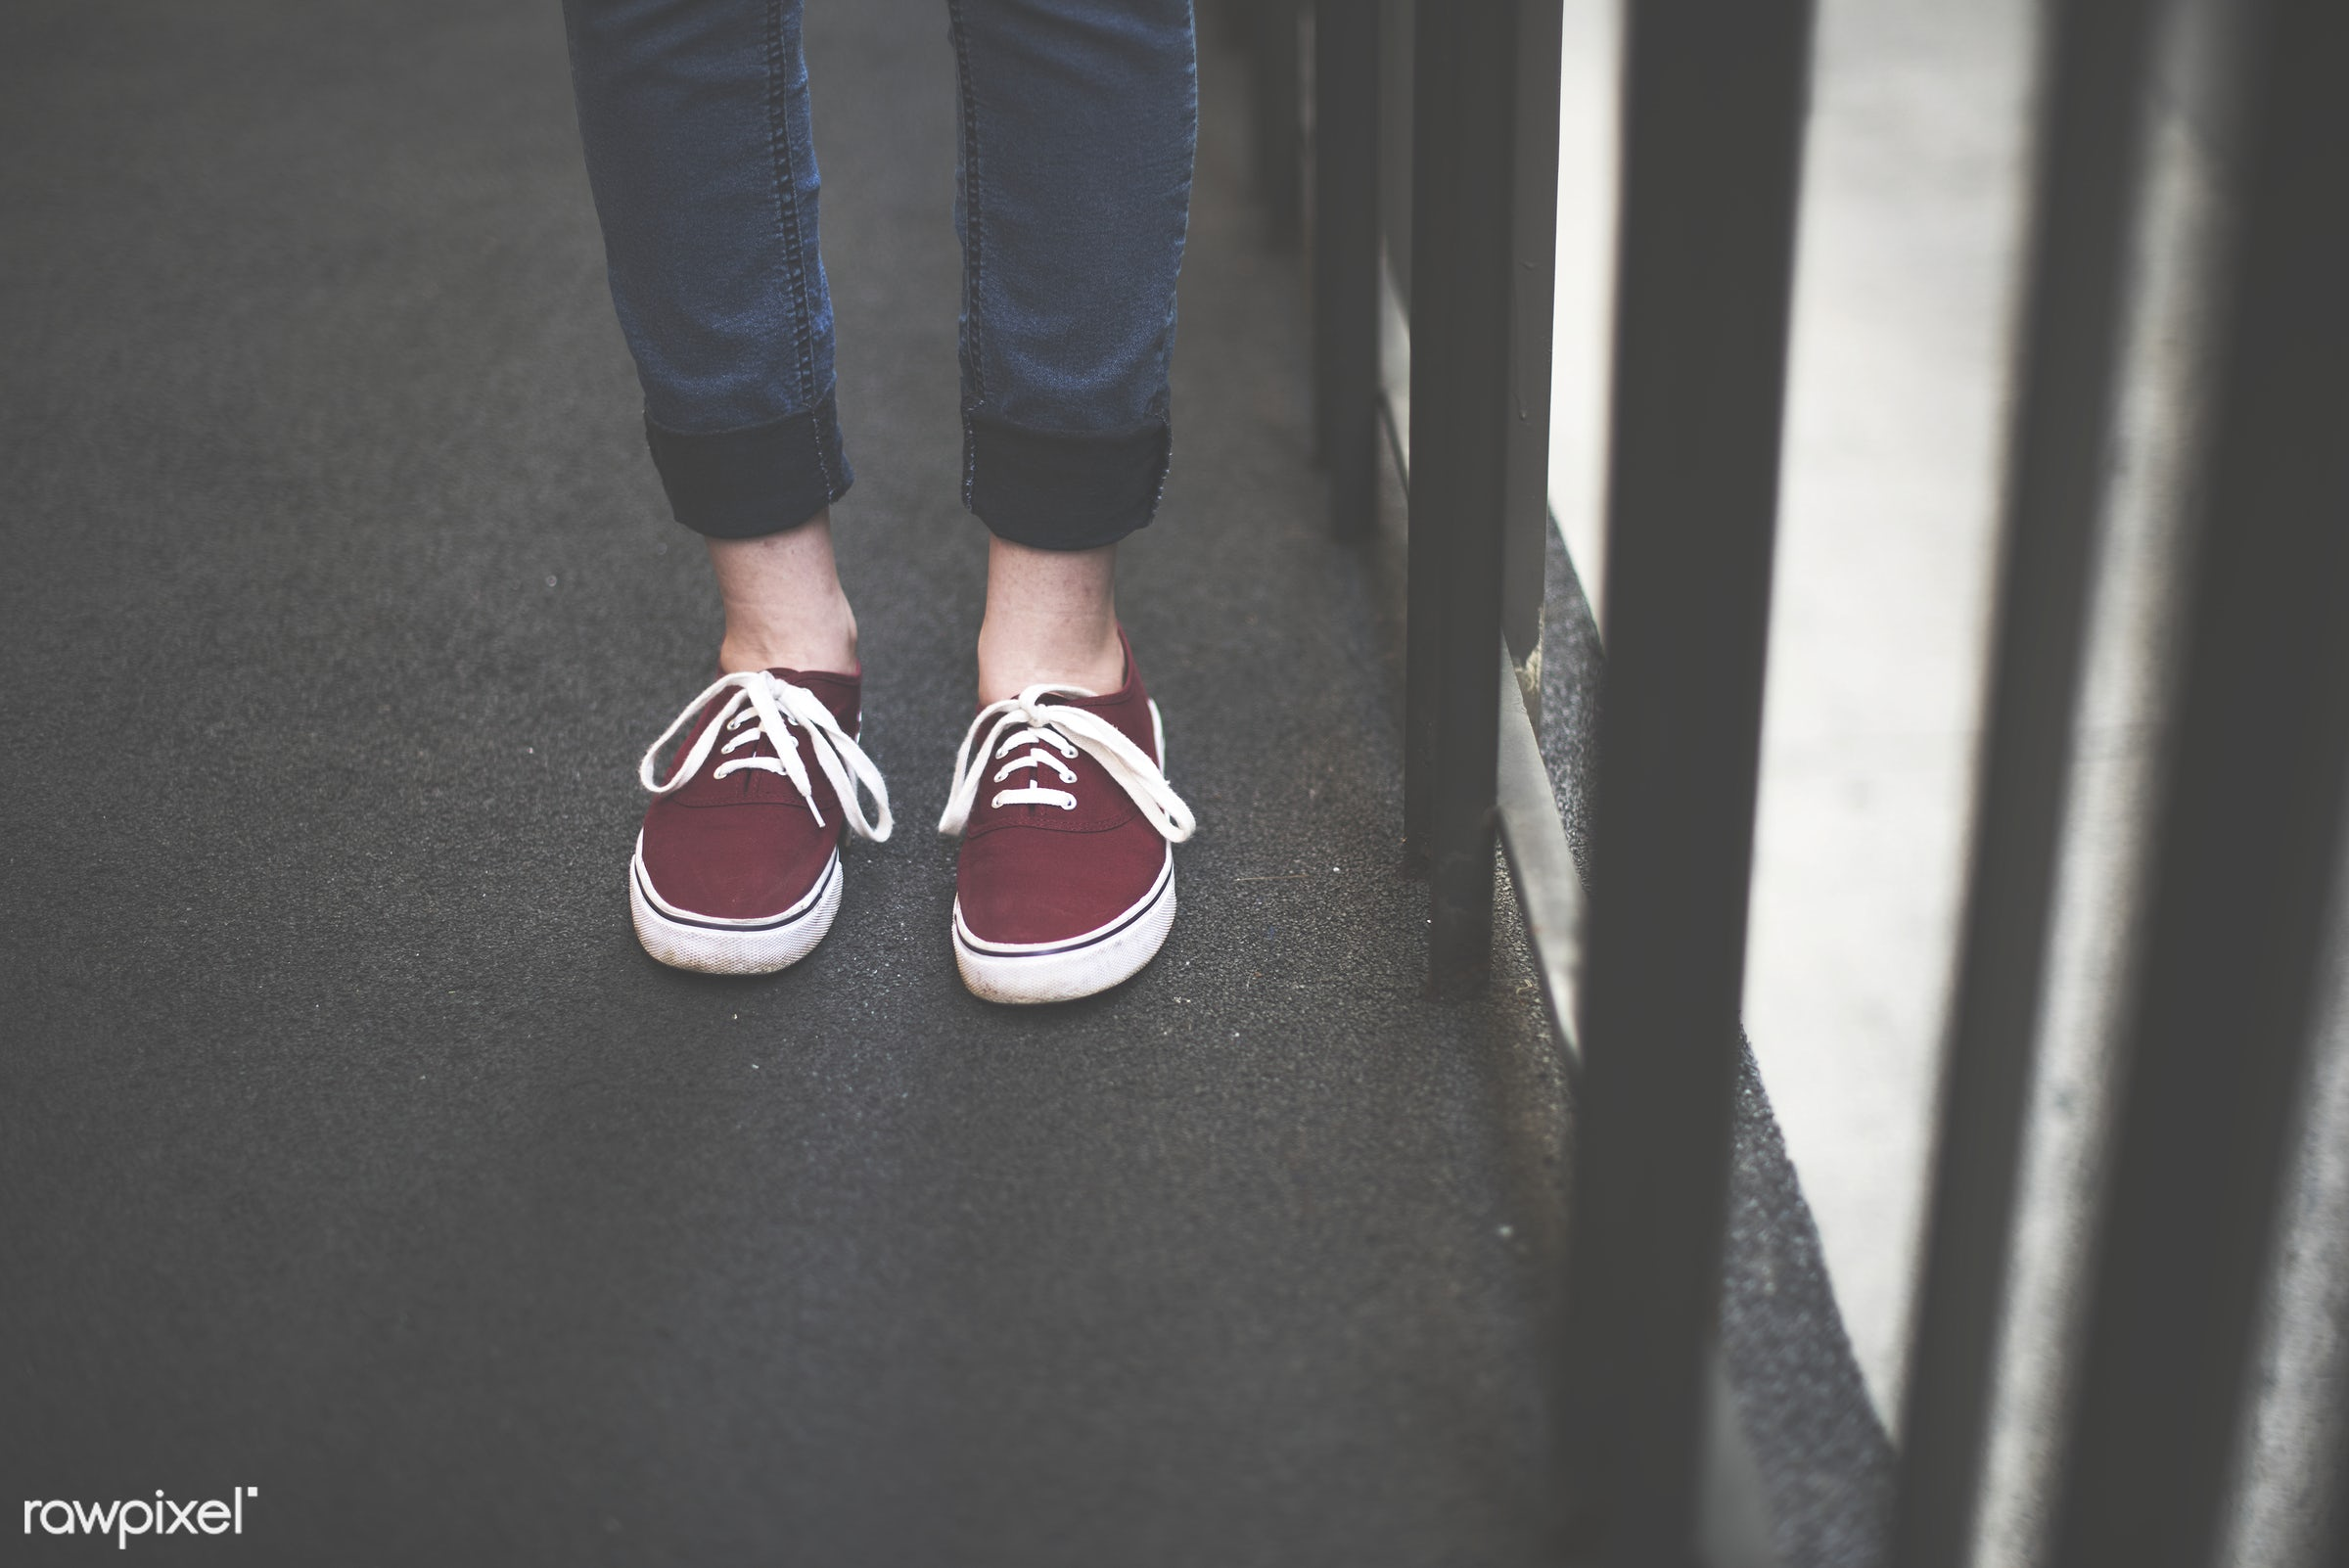 Woman in red shoes - shoes, balcony, body, canvas, canvas shoe, casual, city, city life, cool, fashionable, feet, foot,...